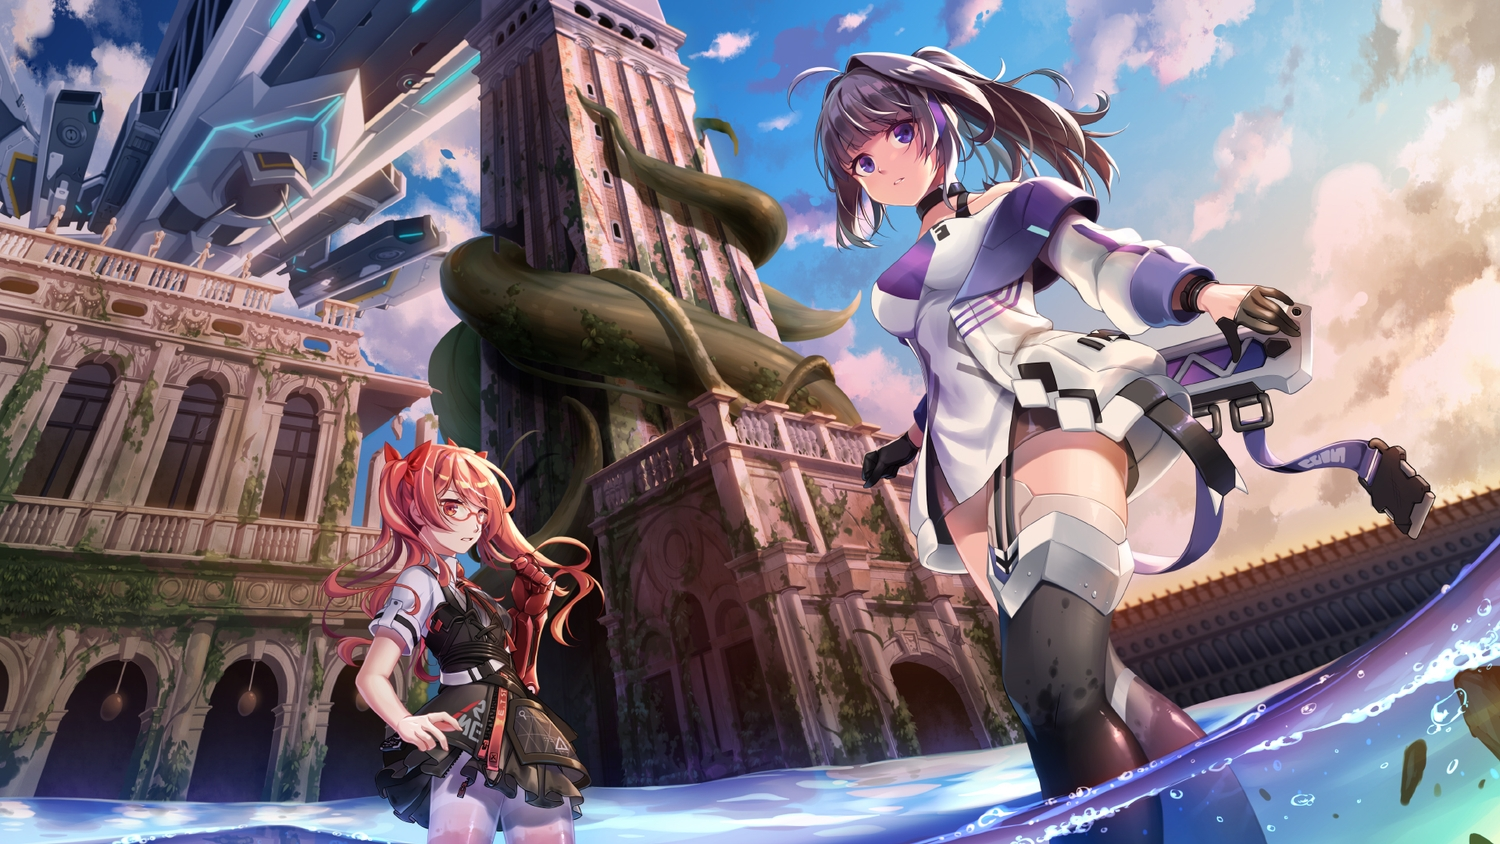 black_hair clouds dress frederica_nikola_tesla_(honkai_impact) glasses gloves honkai_impact nogi-to purple_eyes raiden_mei ruins skirt sky water